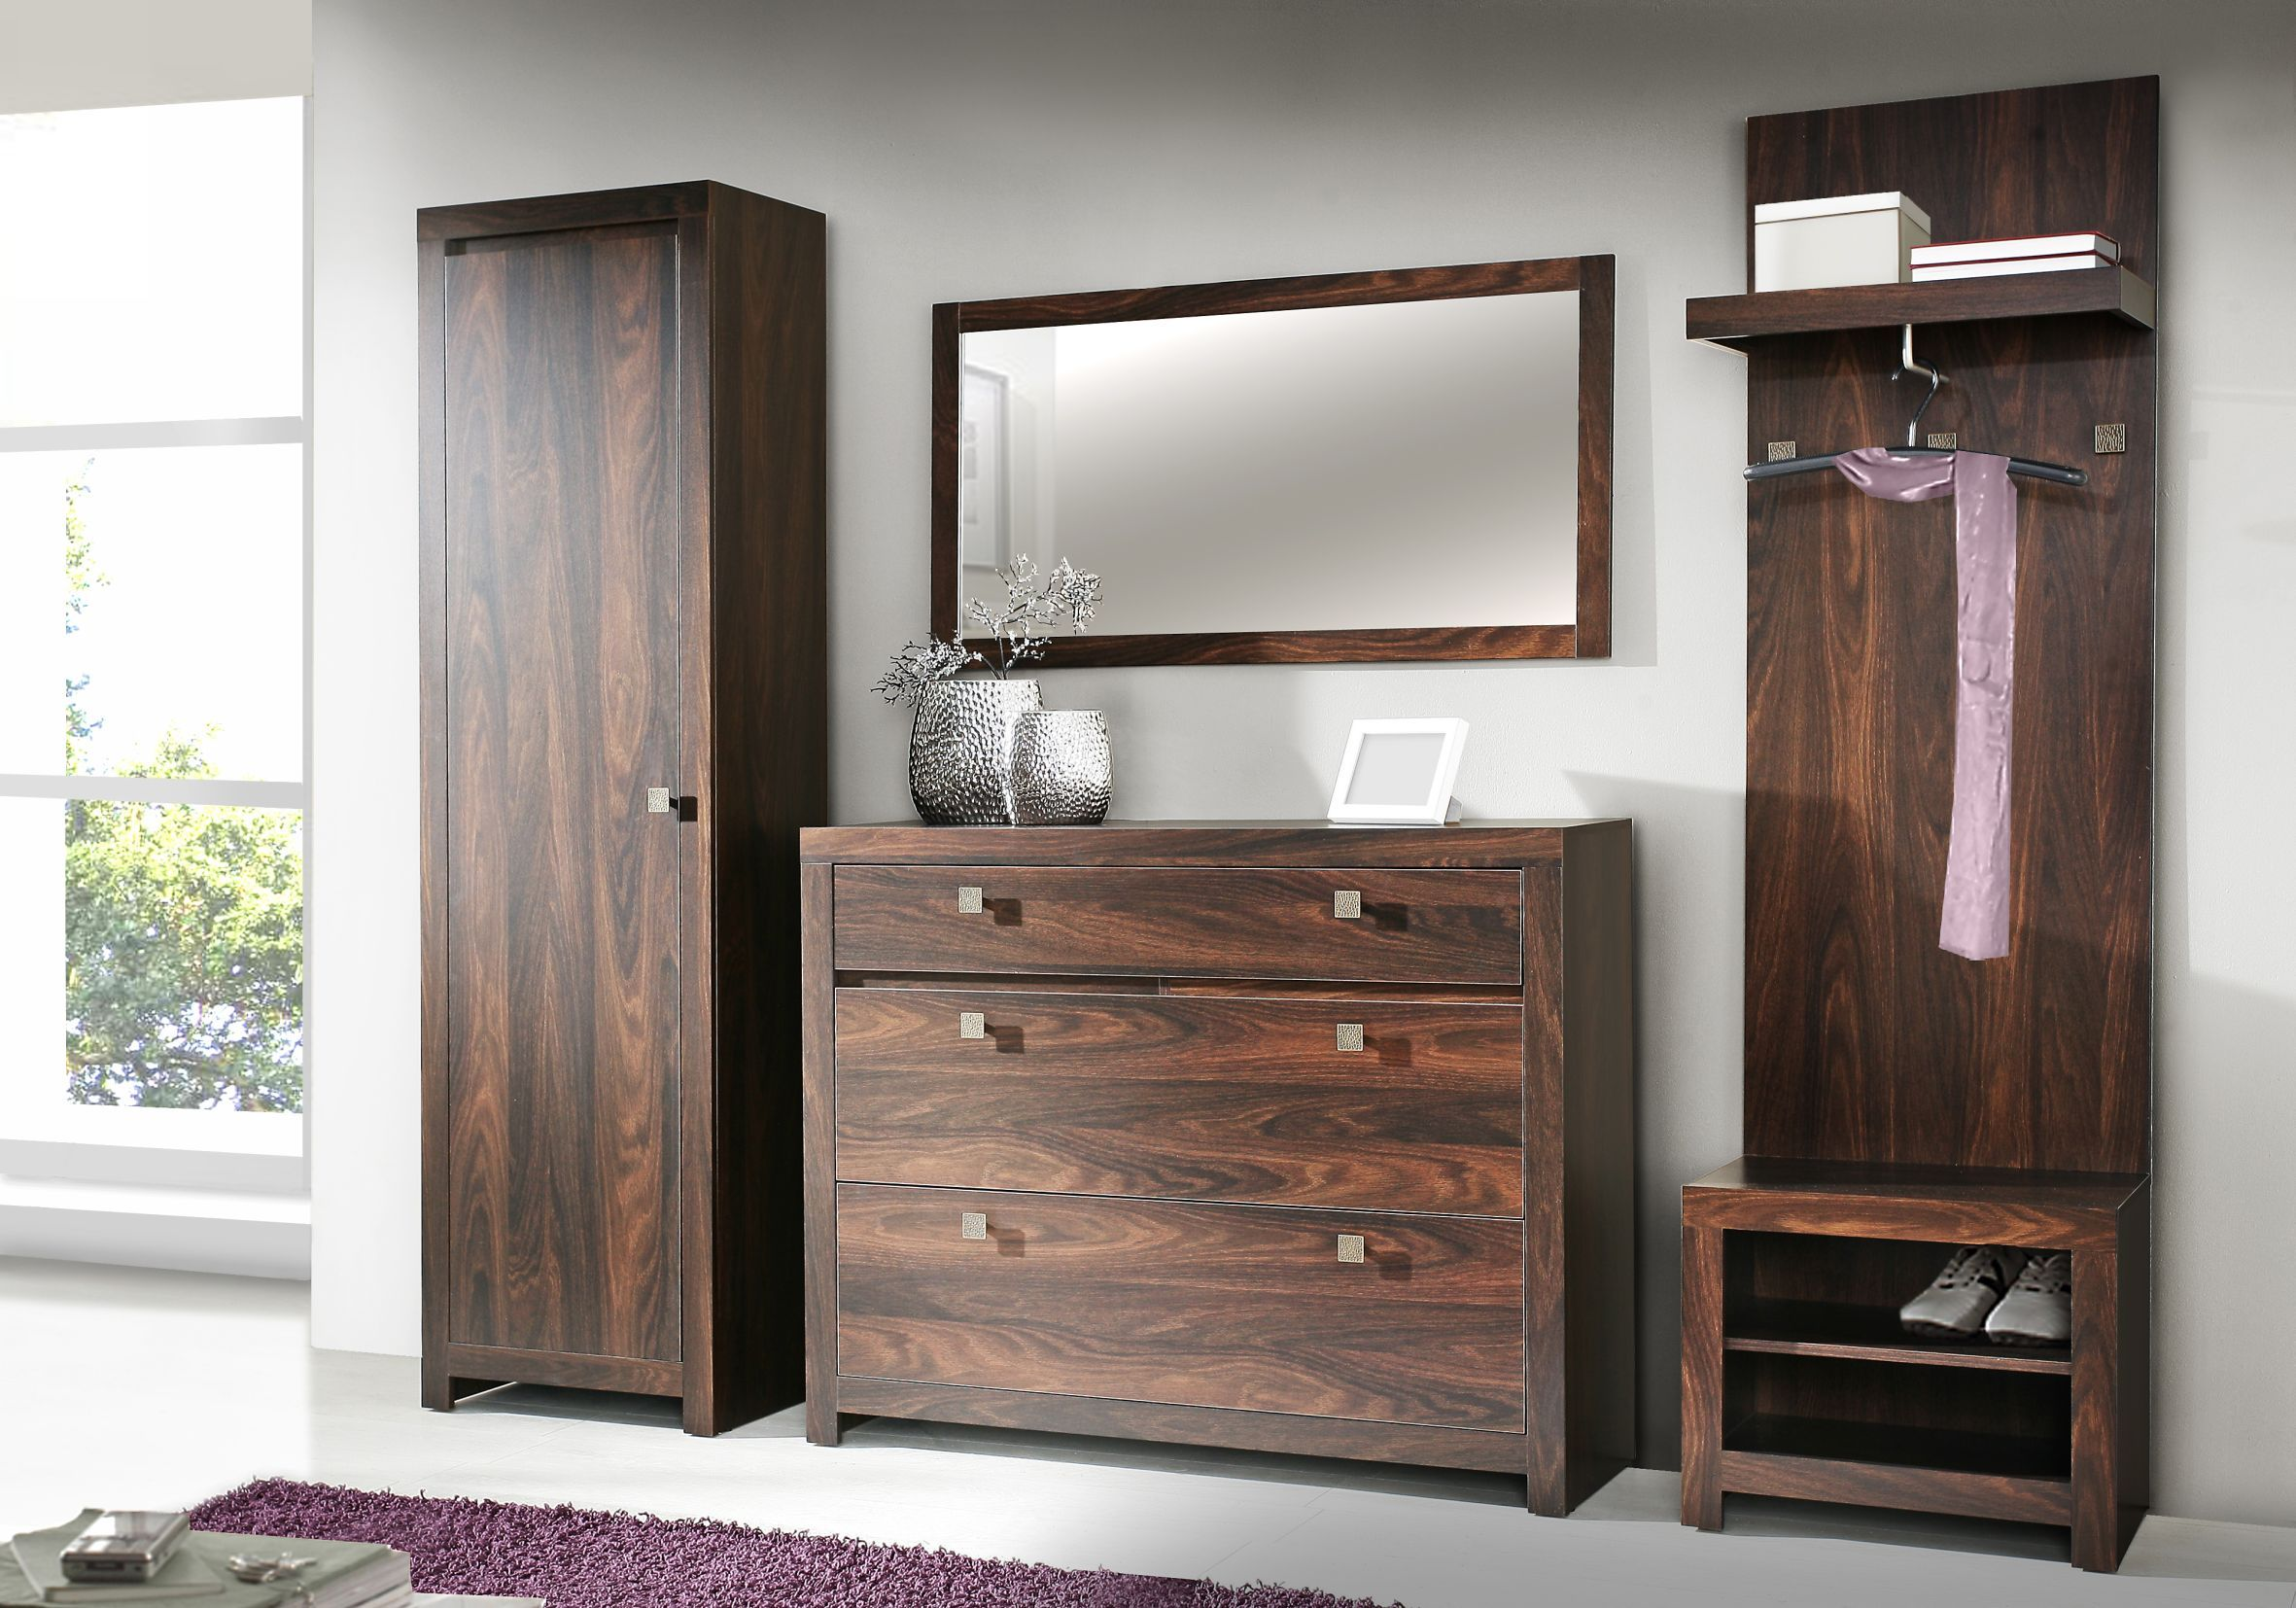 komplett garderobe irma ii m bel im kolonialstil gehen nie aus der mode die dunklen warmen. Black Bedroom Furniture Sets. Home Design Ideas